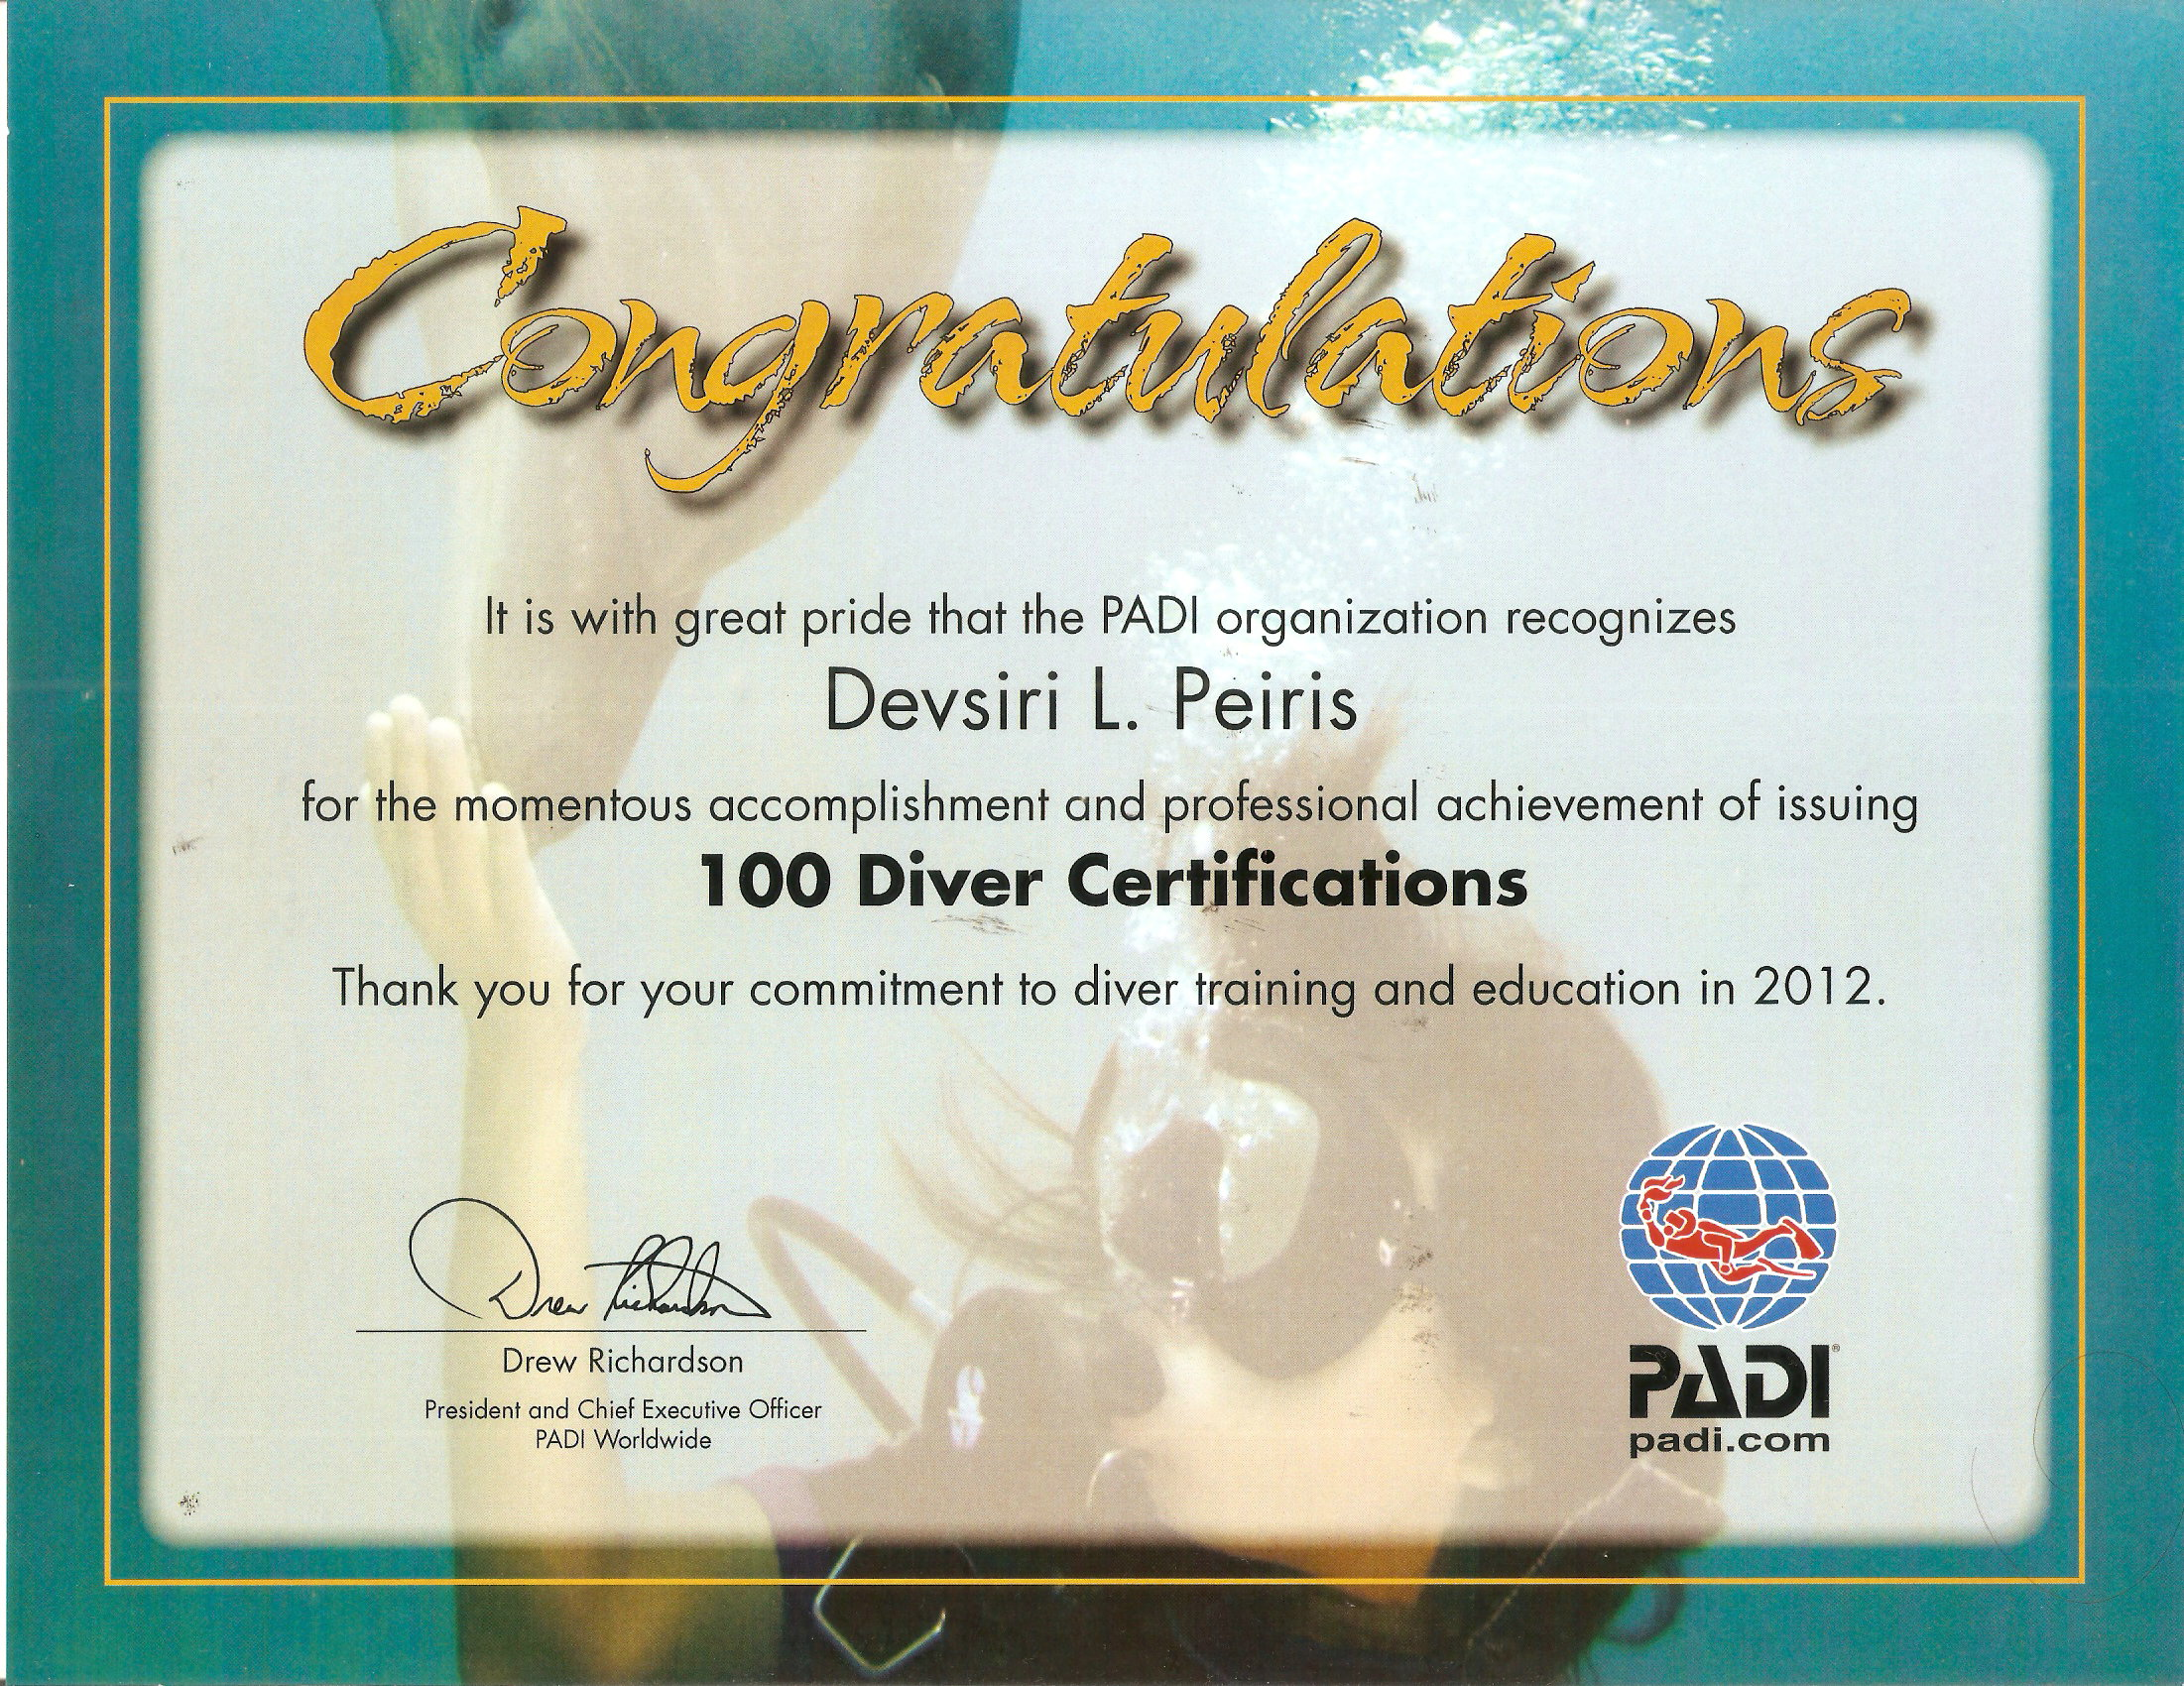 Thank You Mr. Drew Richardson, CEO of PADI Worldwide for the lovely ...